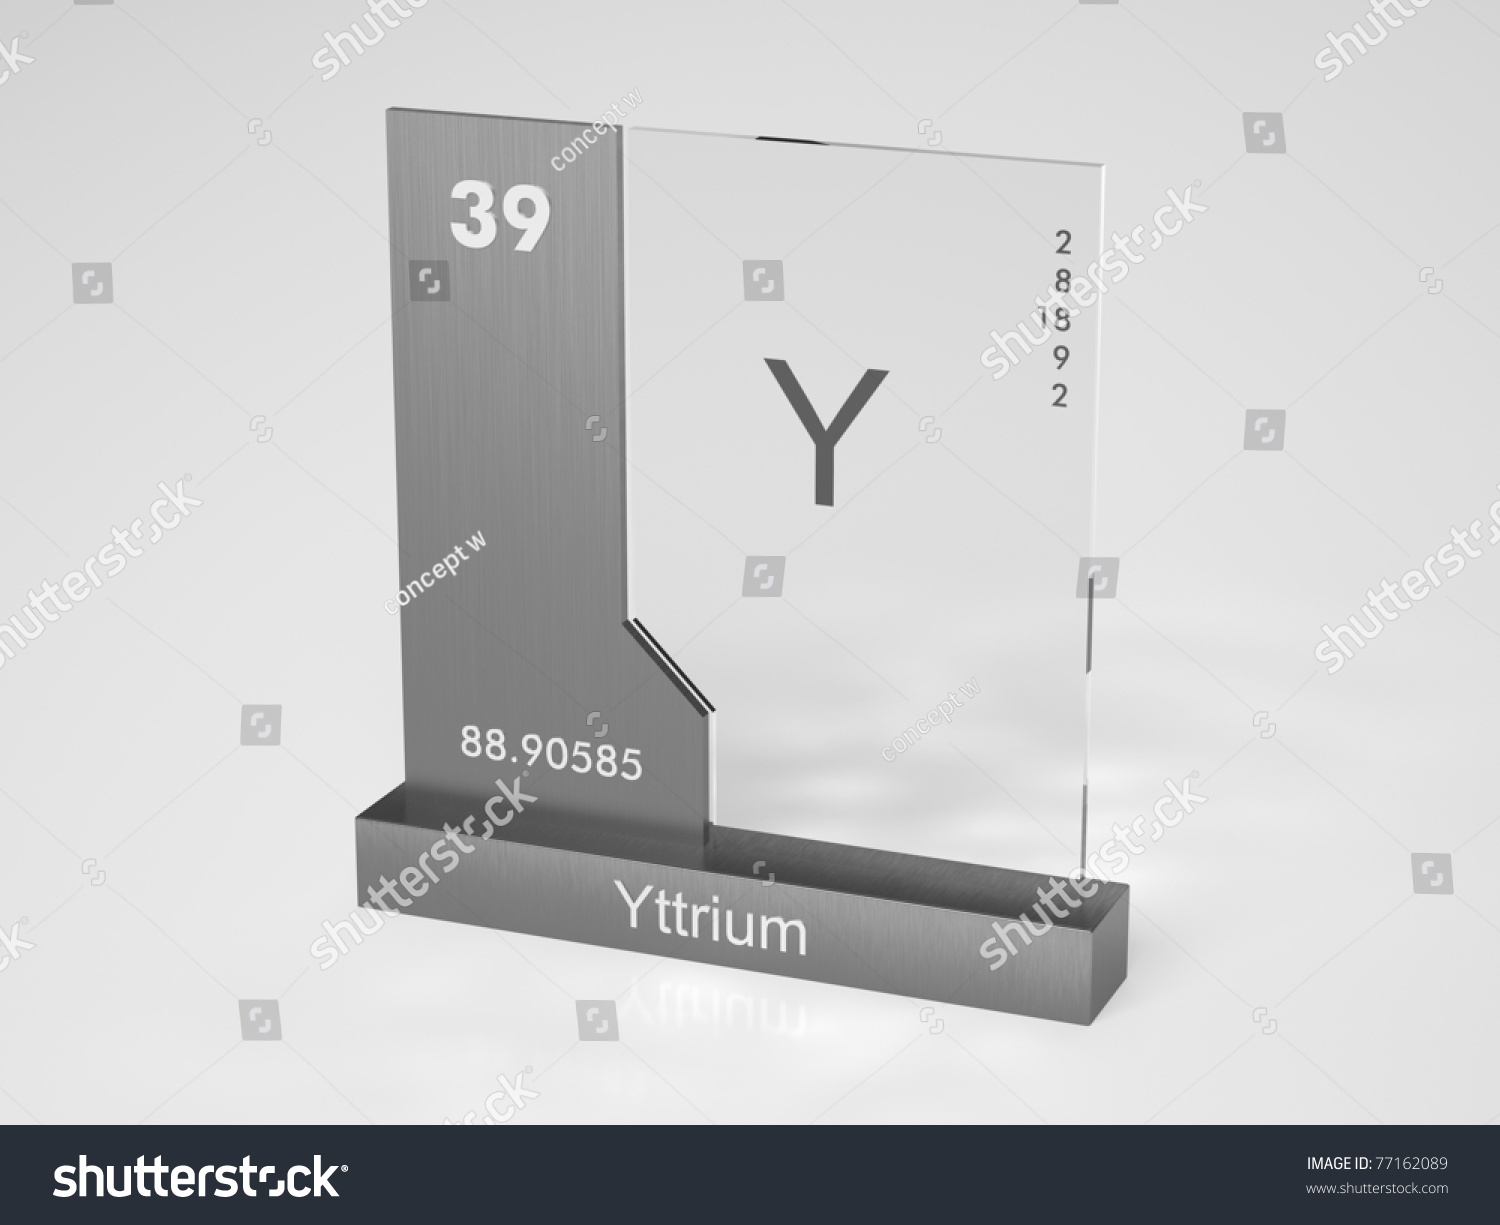 Yttrium symbol y chemical element periodic stock illustration yttrium symbol y chemical element of the periodic table gamestrikefo Choice Image